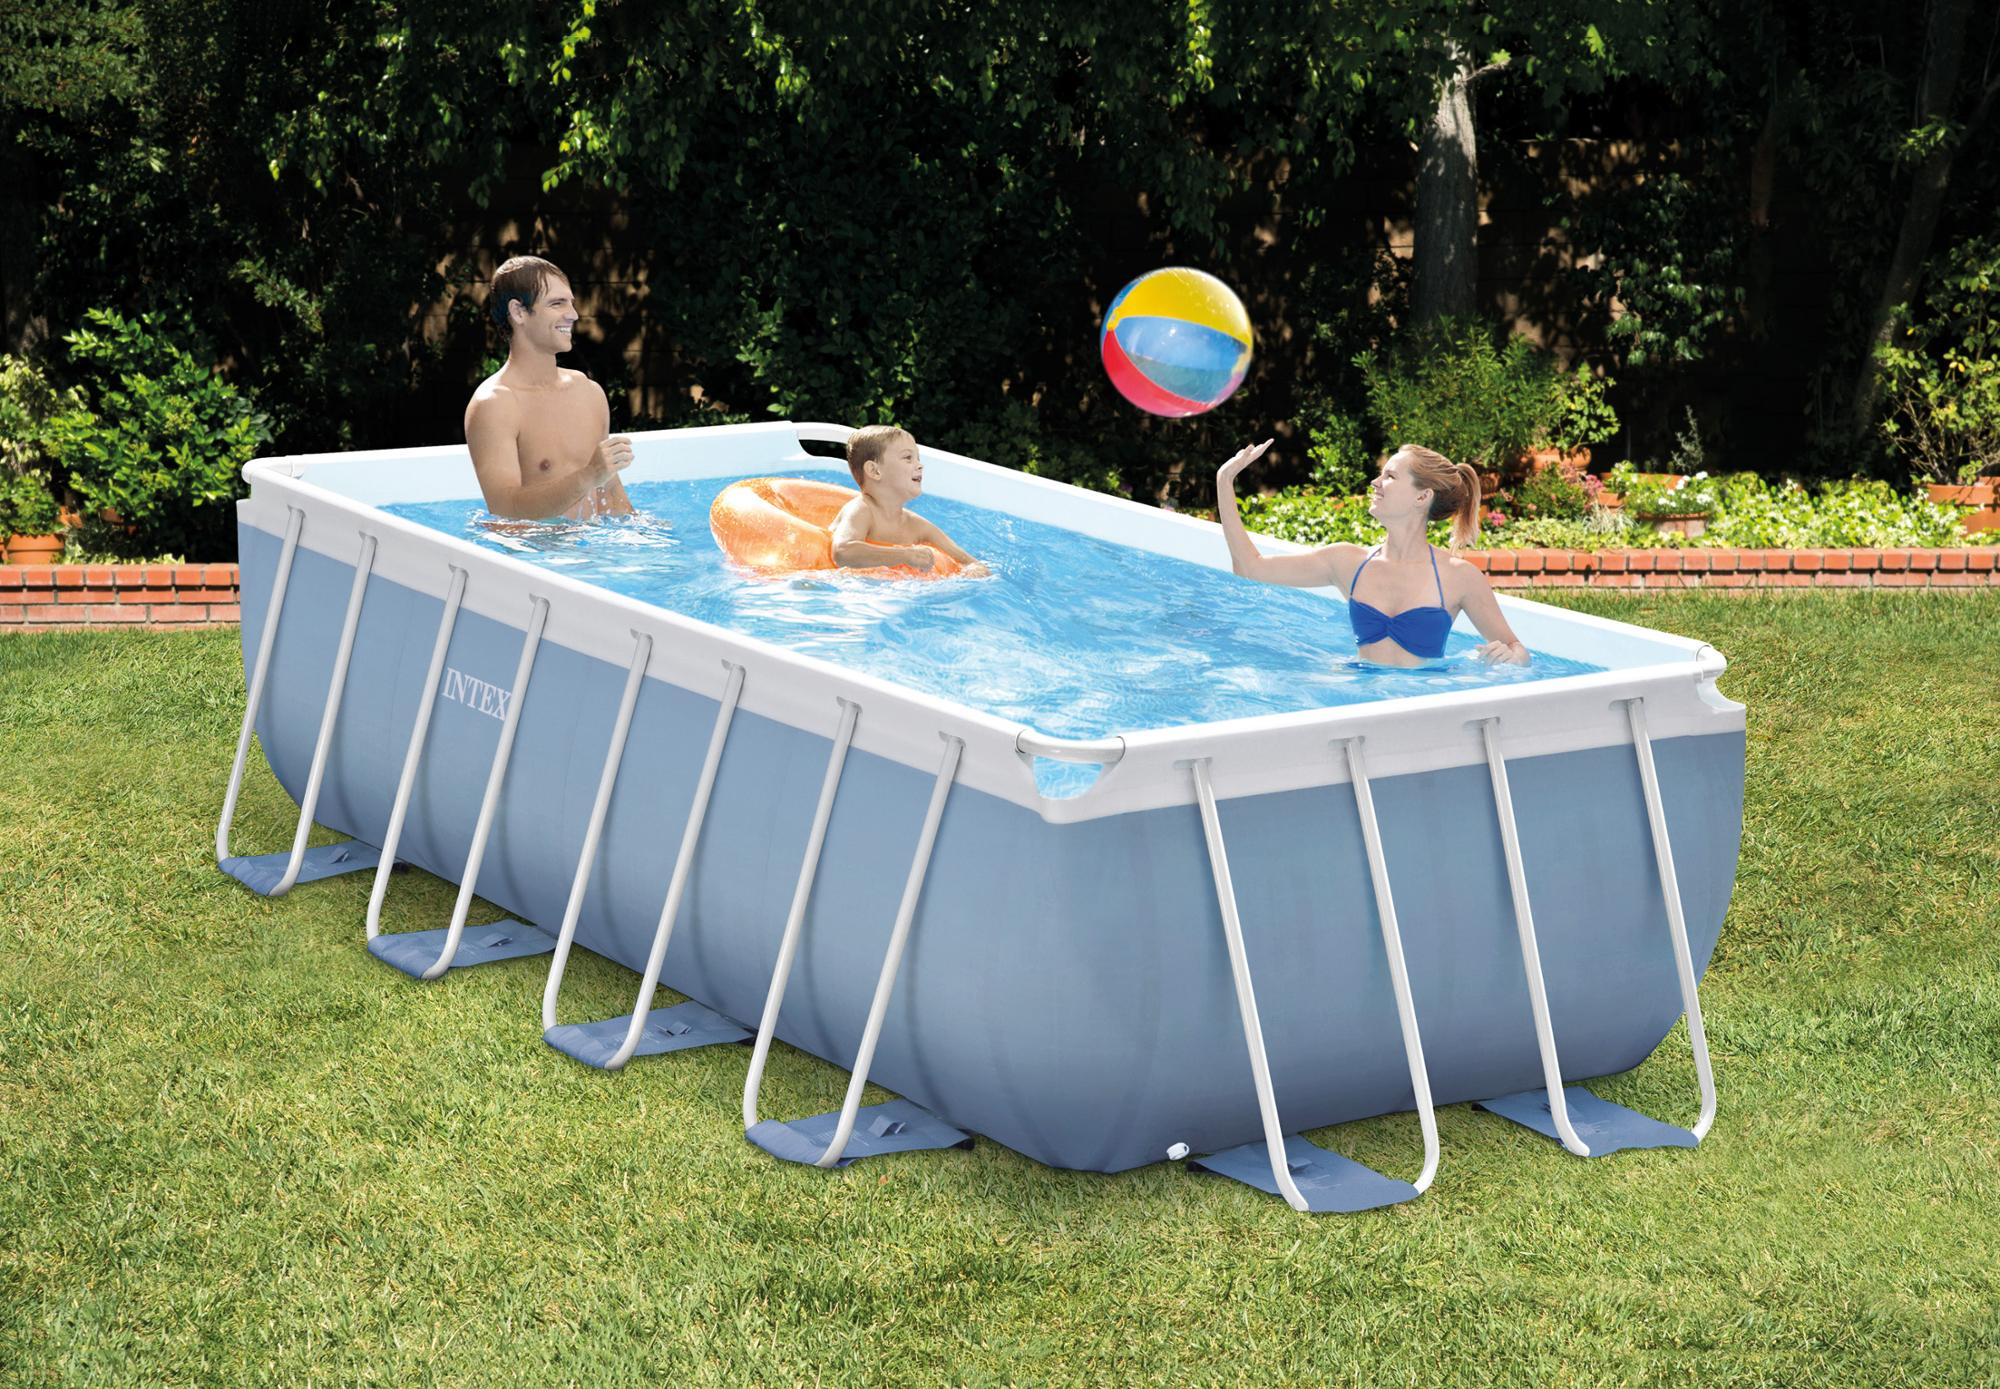 INTEX 26712  Metal Frame Pool large inflatable outdoor Family swimming pool